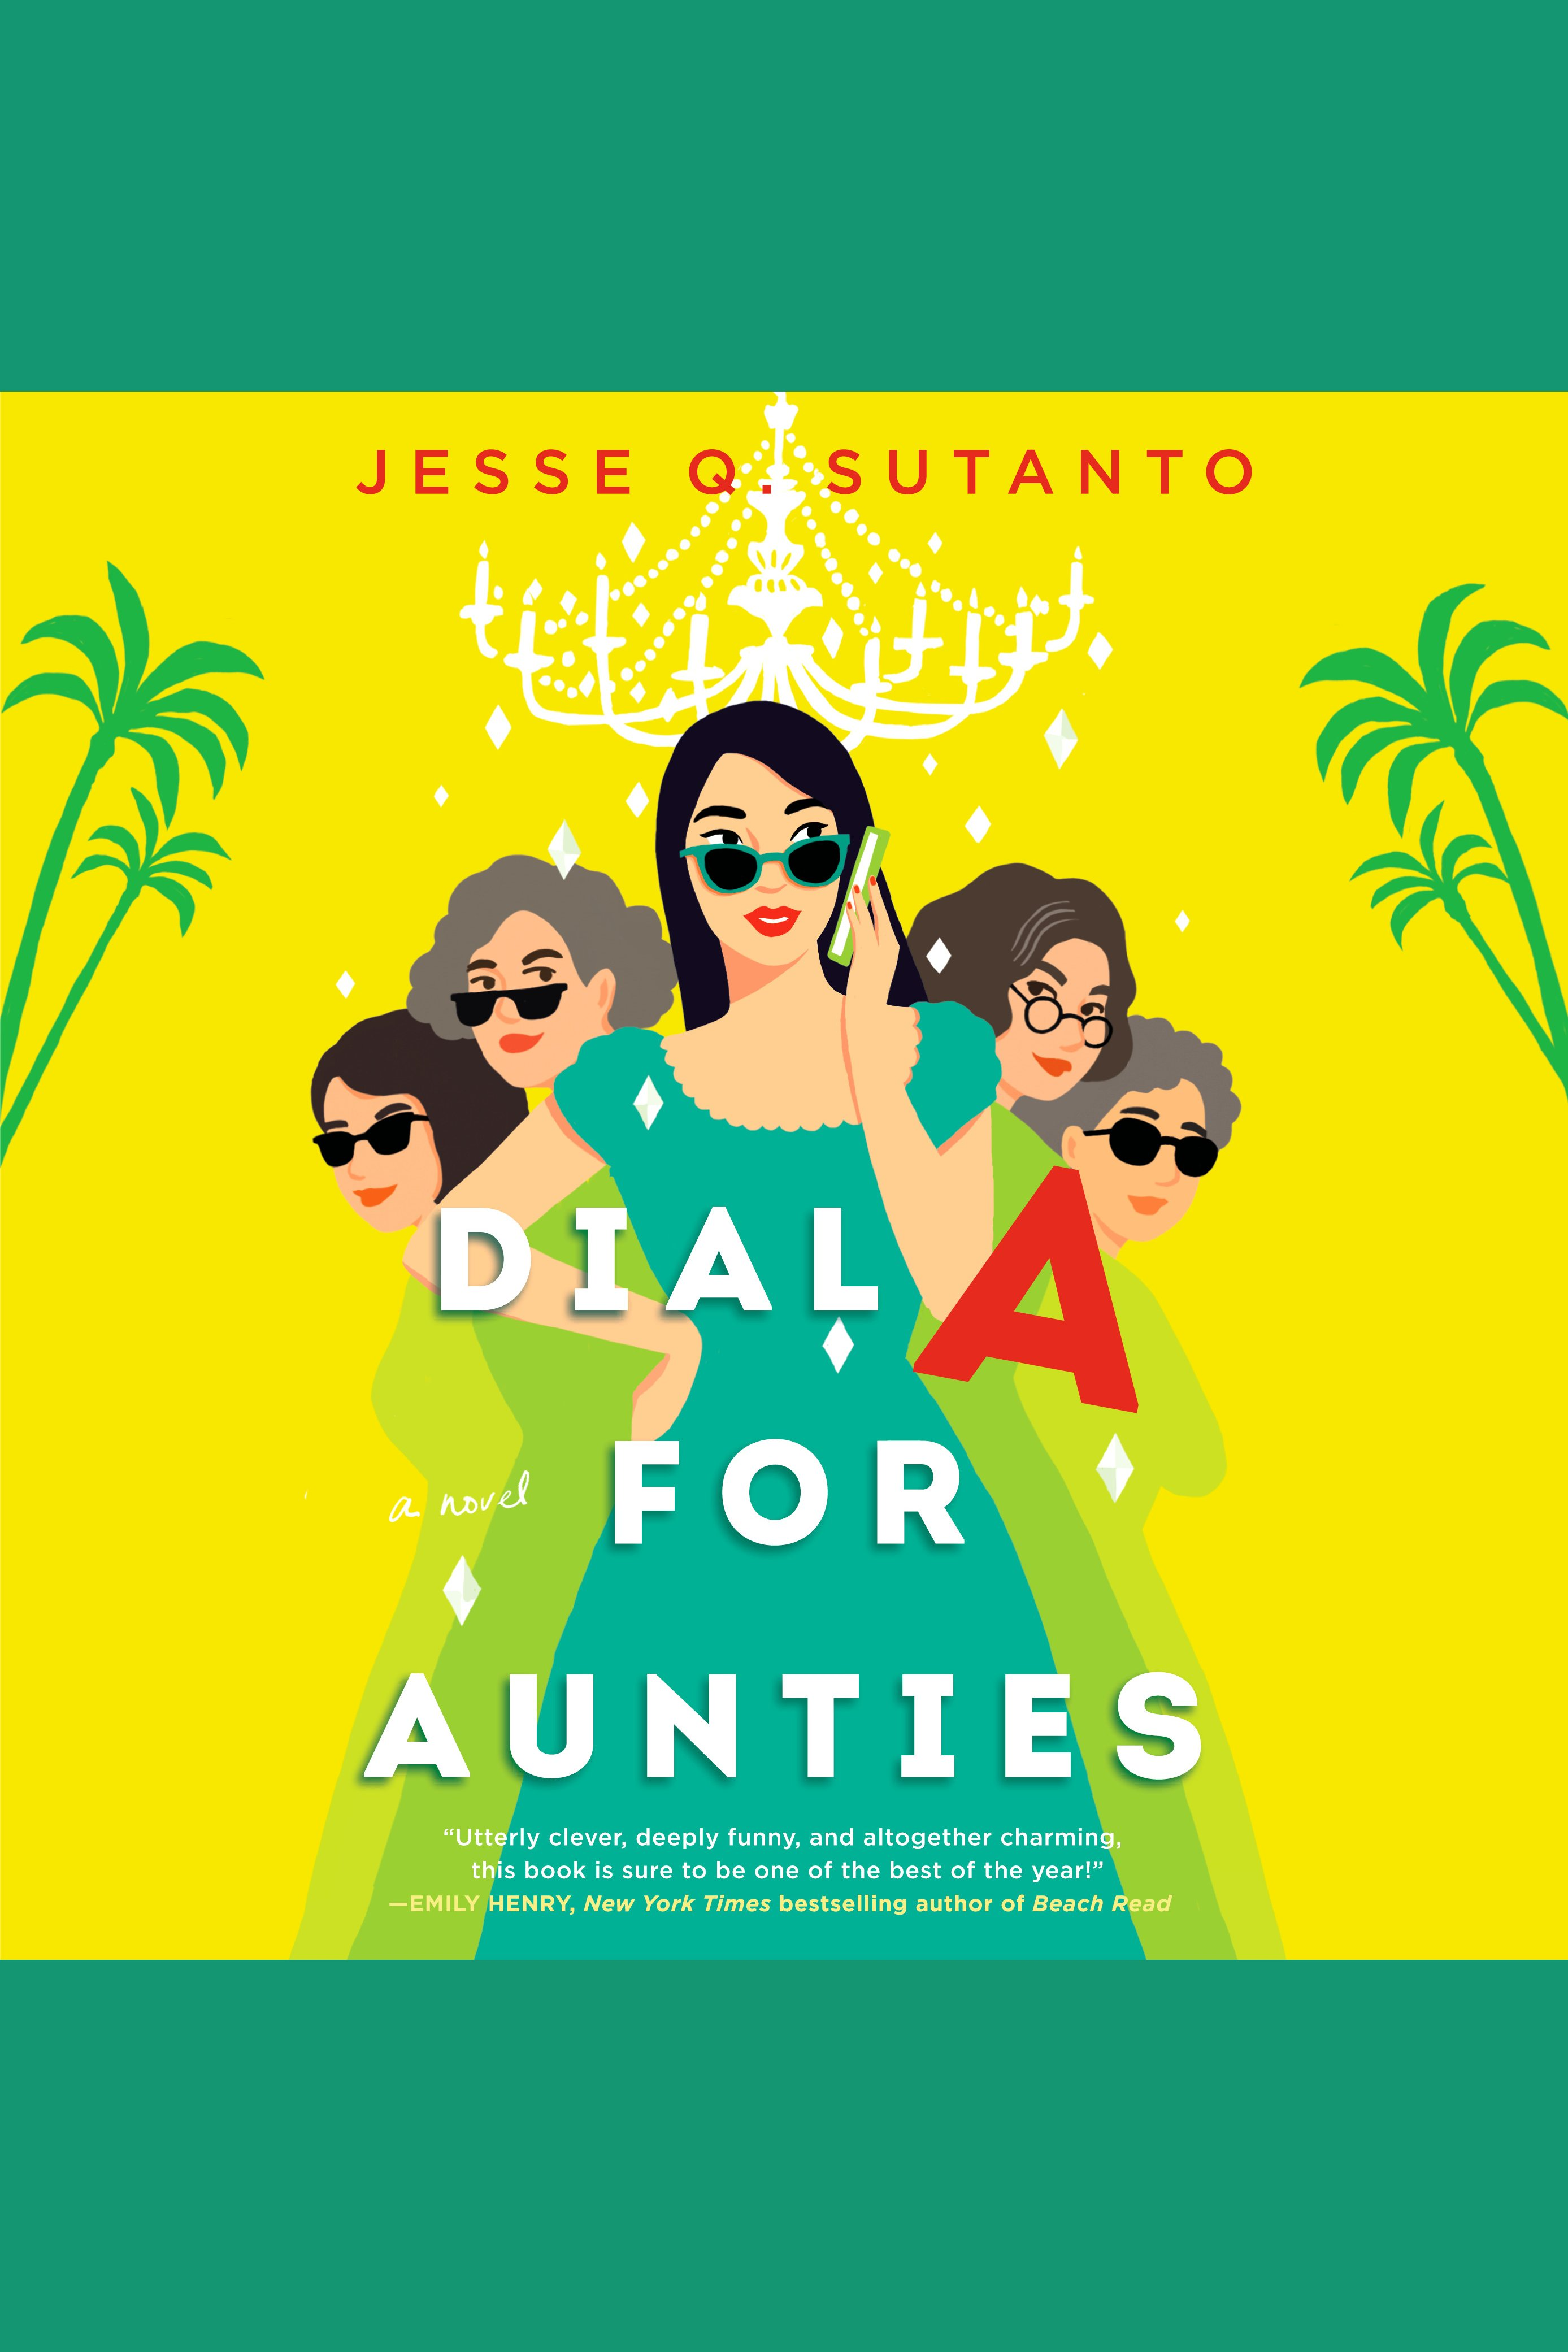 Cover Image of Dial A for Aunties